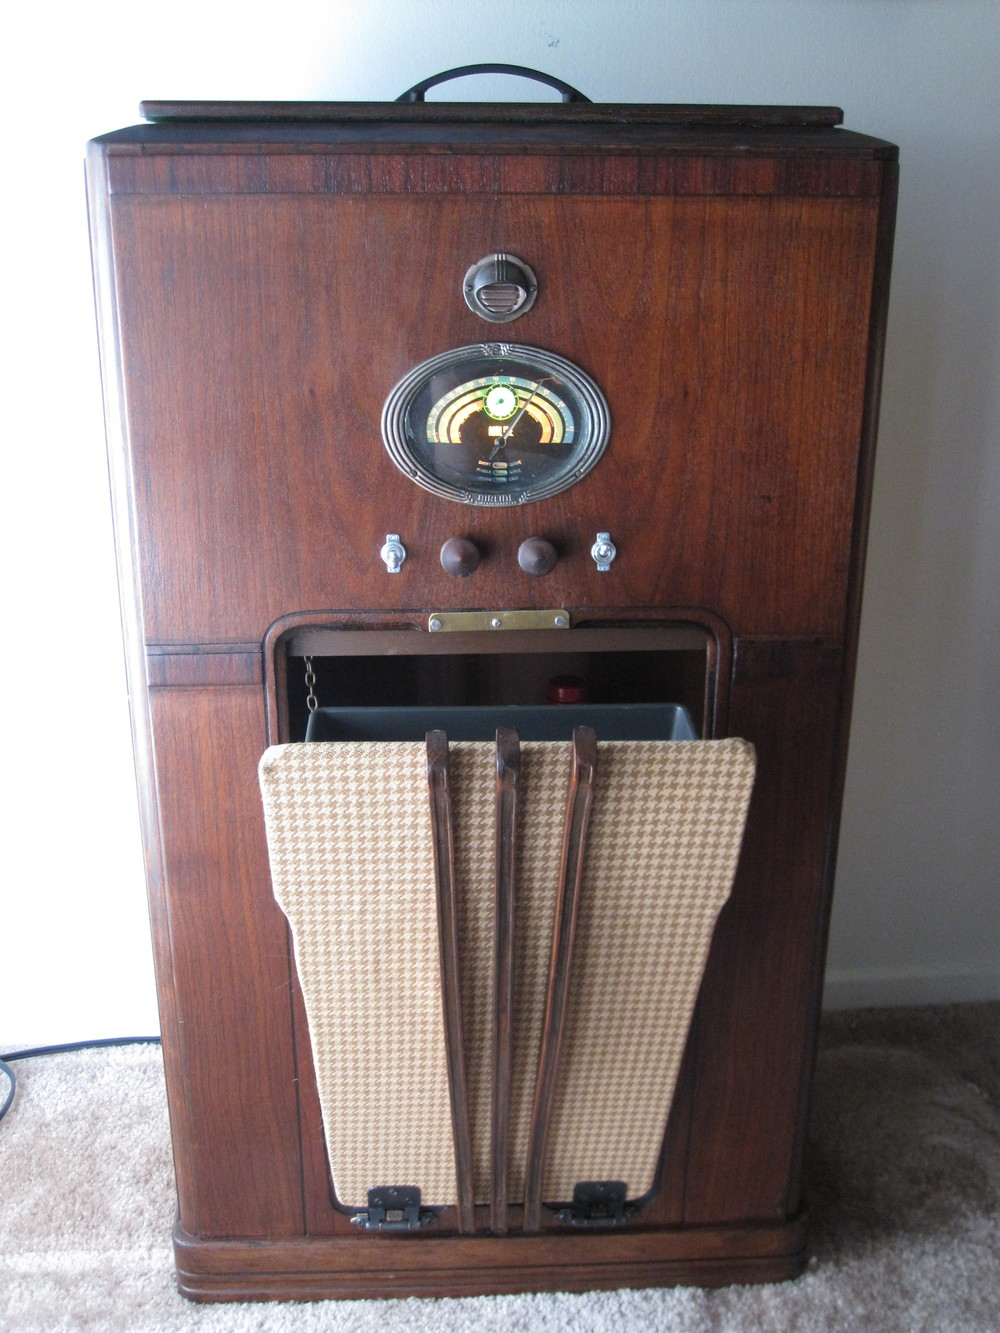 COCTAIL STEREO CABINET IMAGE 05.JPG